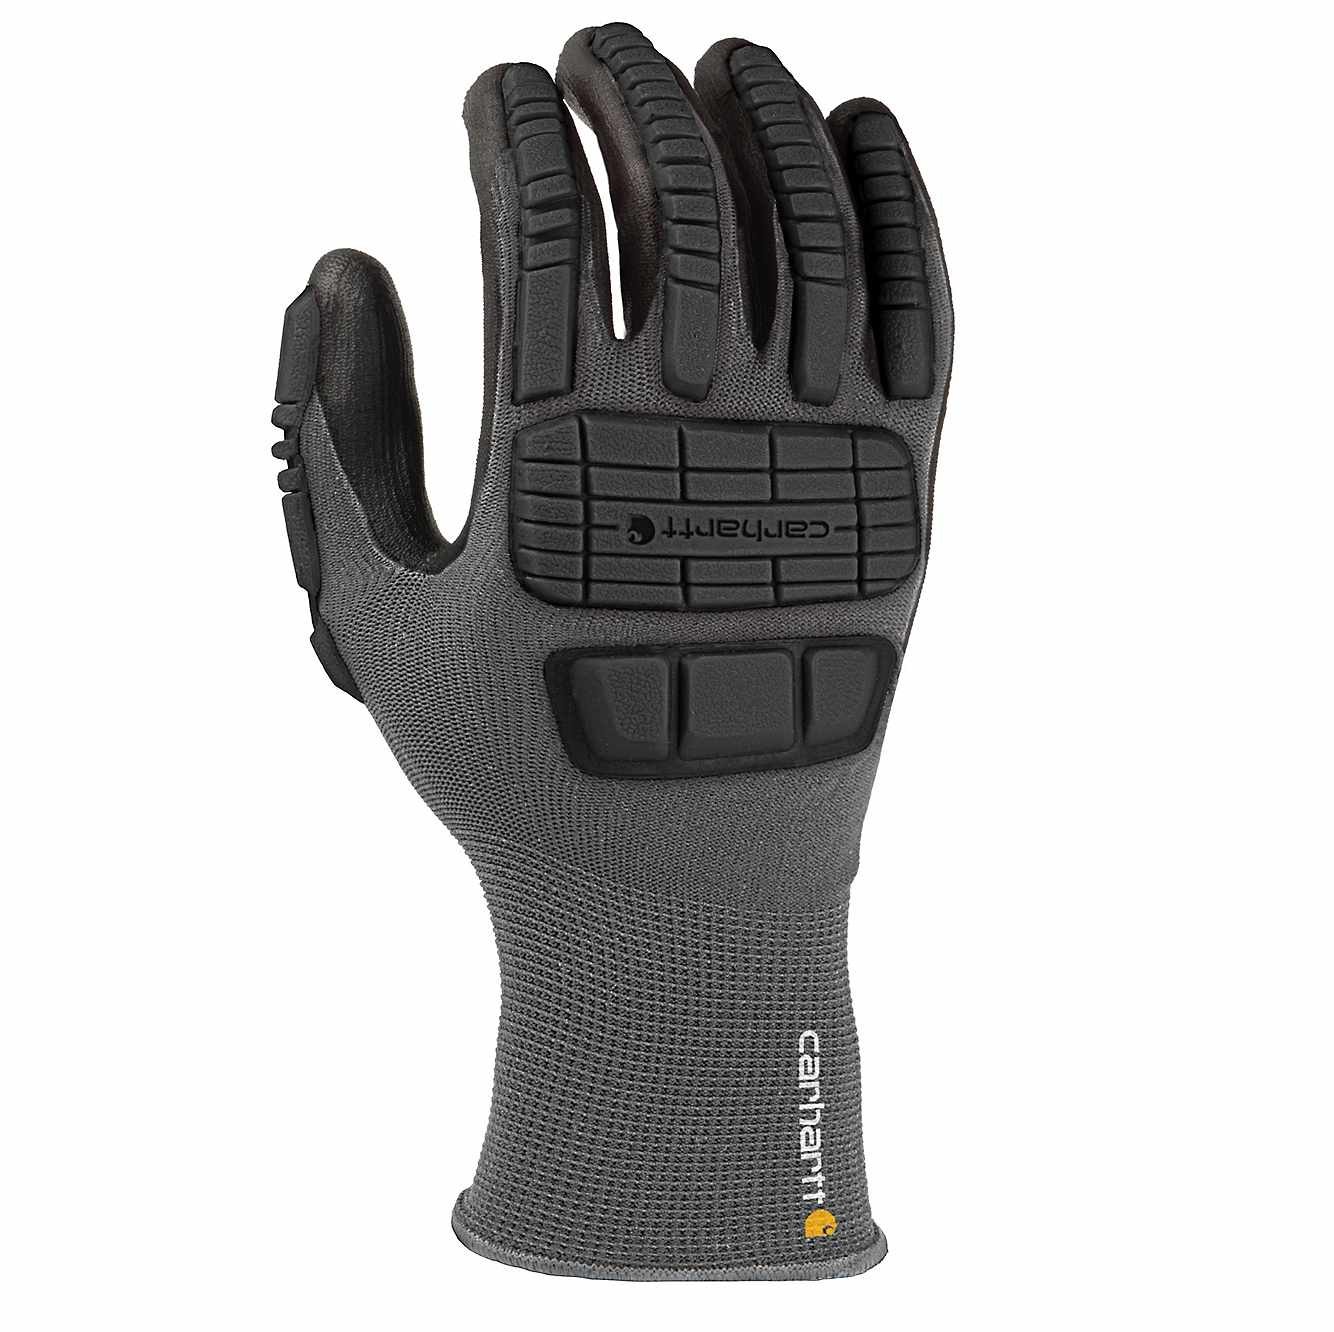 Picture of Impact Hybrid C-Grip® Glove in Gray